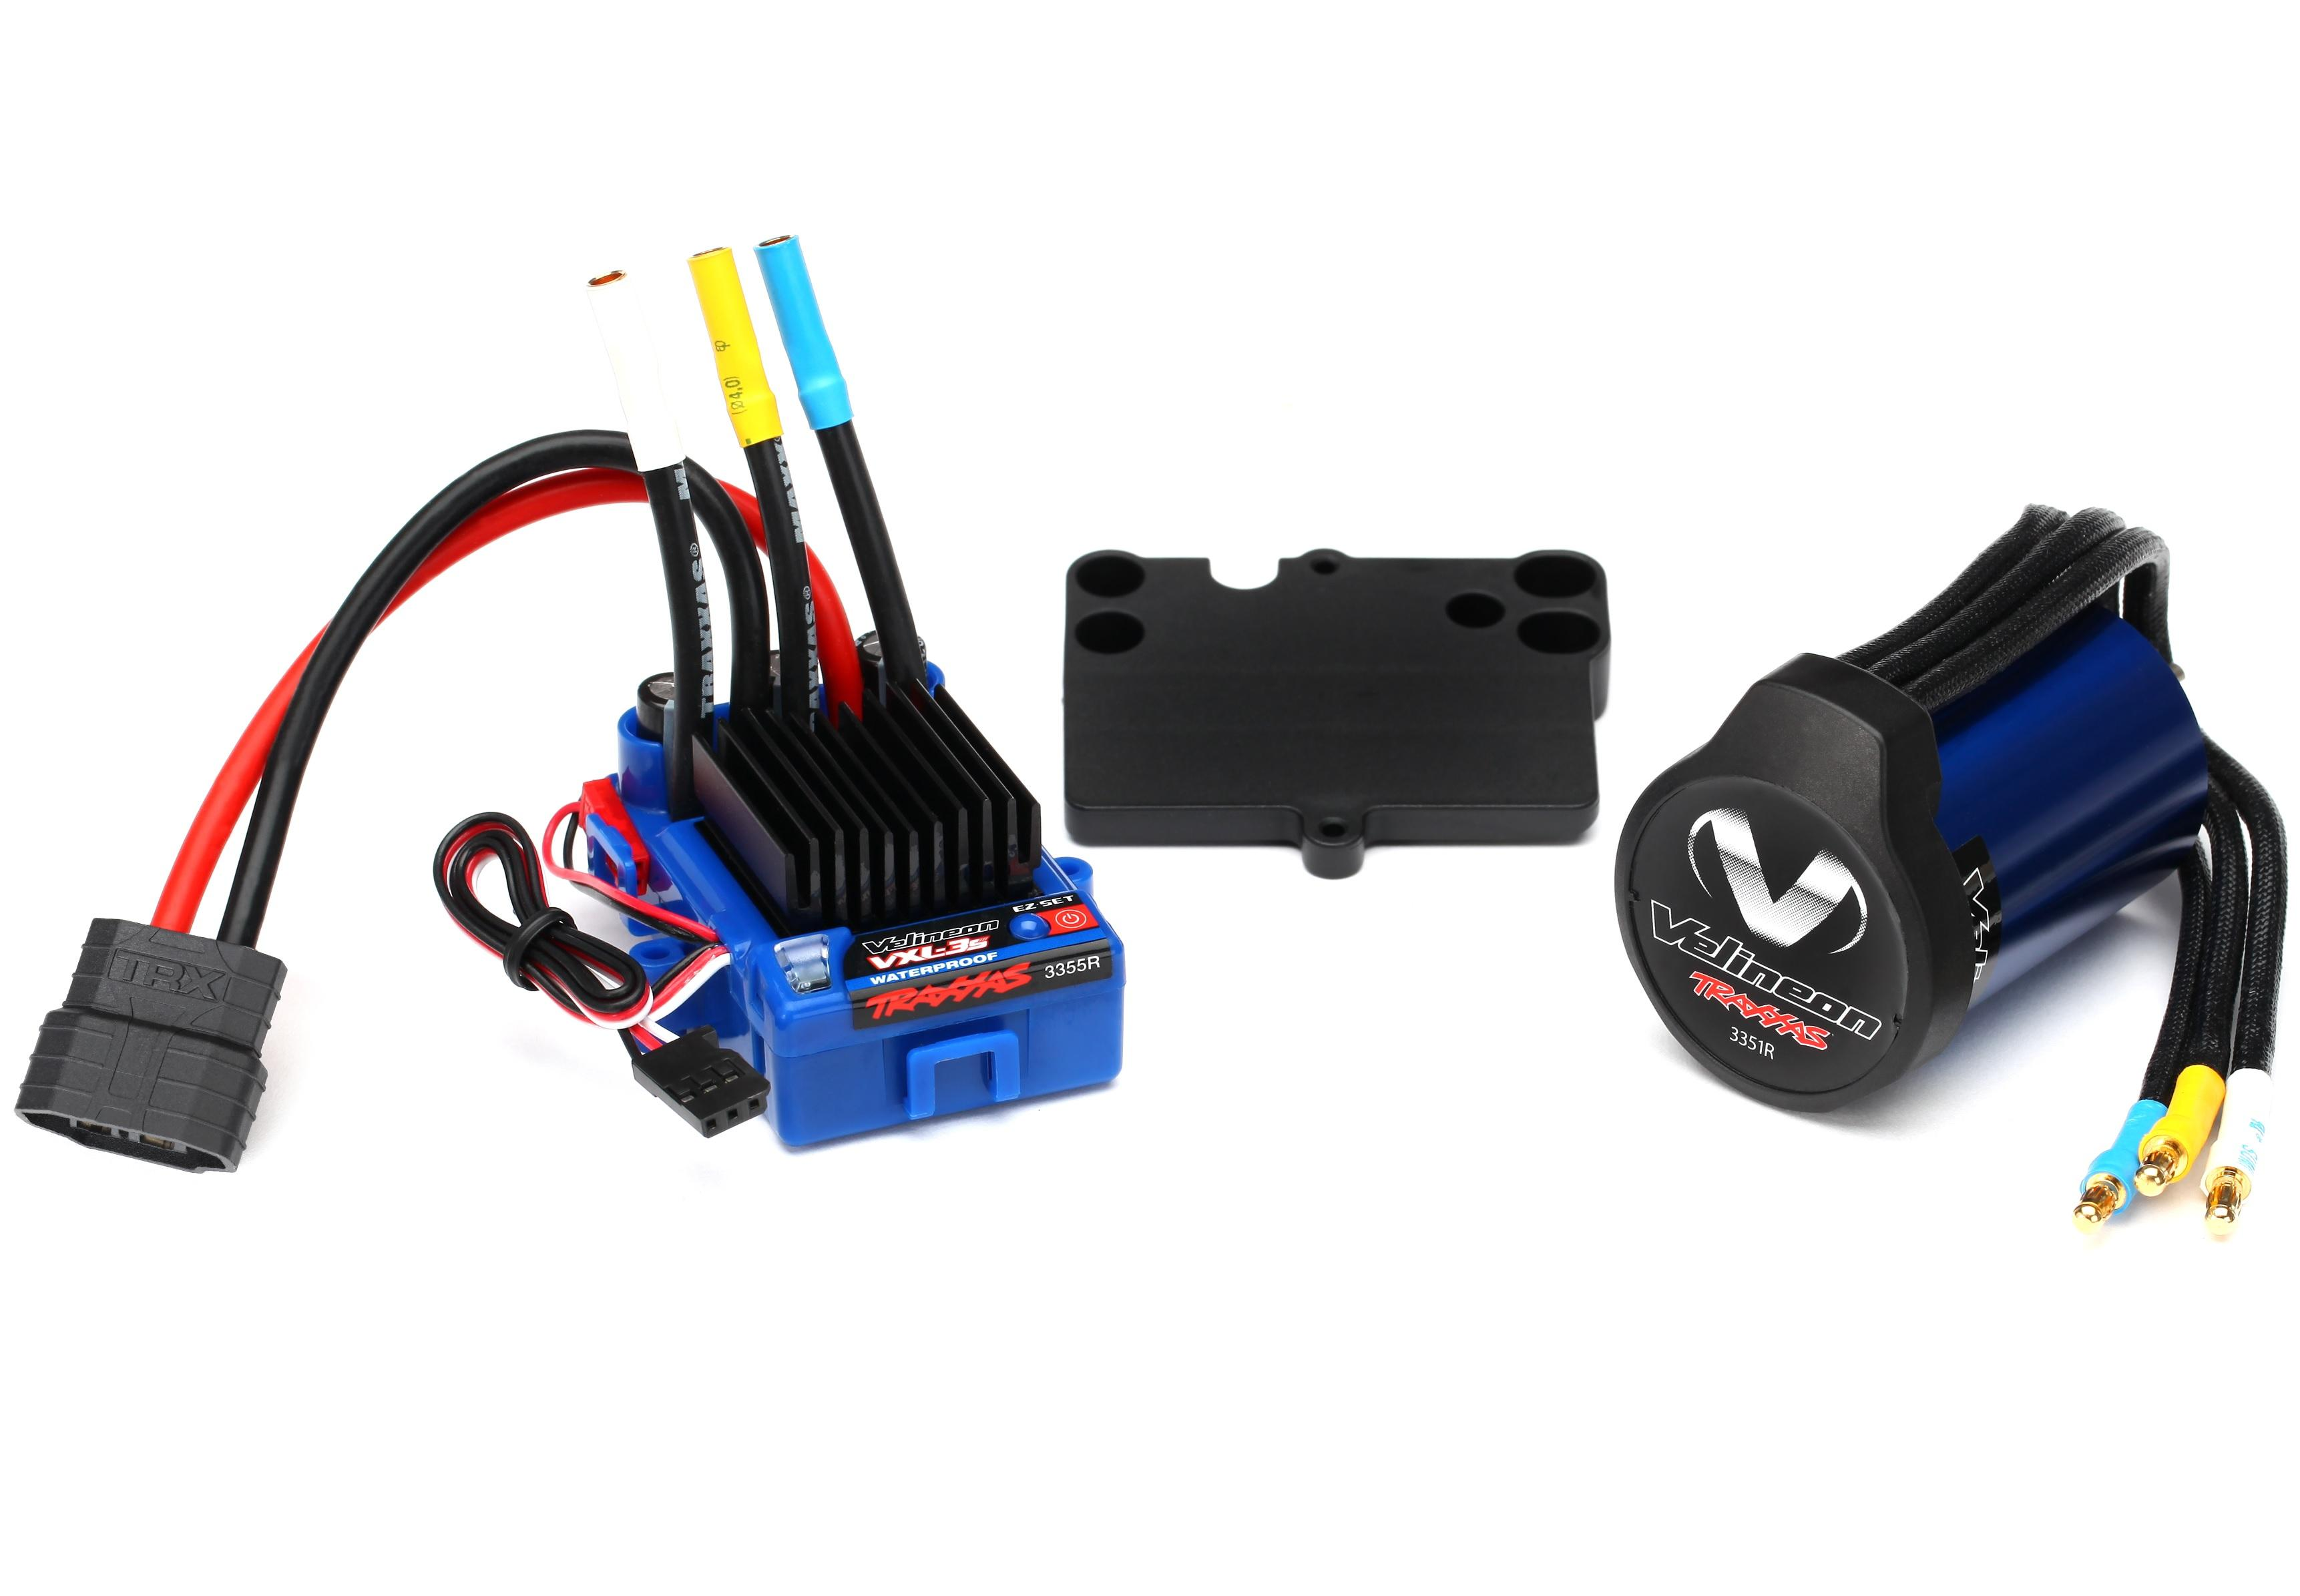 Traxxas 3350R Velineon VXL 3s Brushless Power System